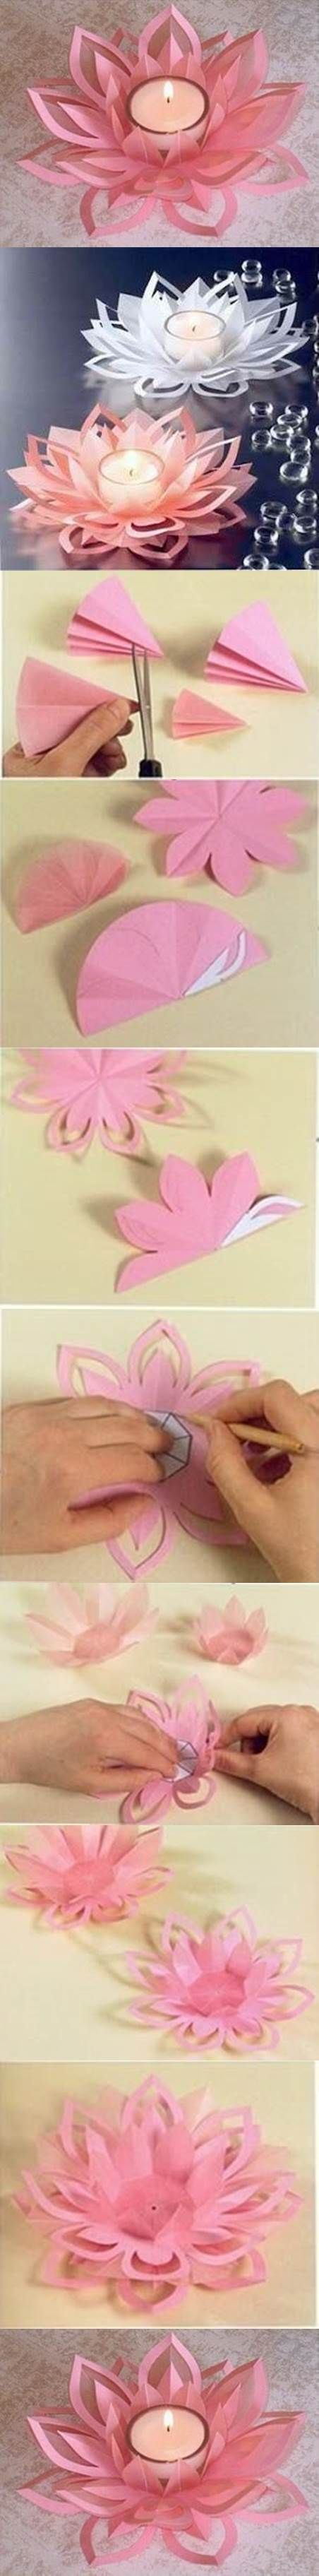 DIY Paper Lotus Candlestick | iCreativeIdeas.com Like Us on Facebook ==> https://www.facebook.com/icreativeideas